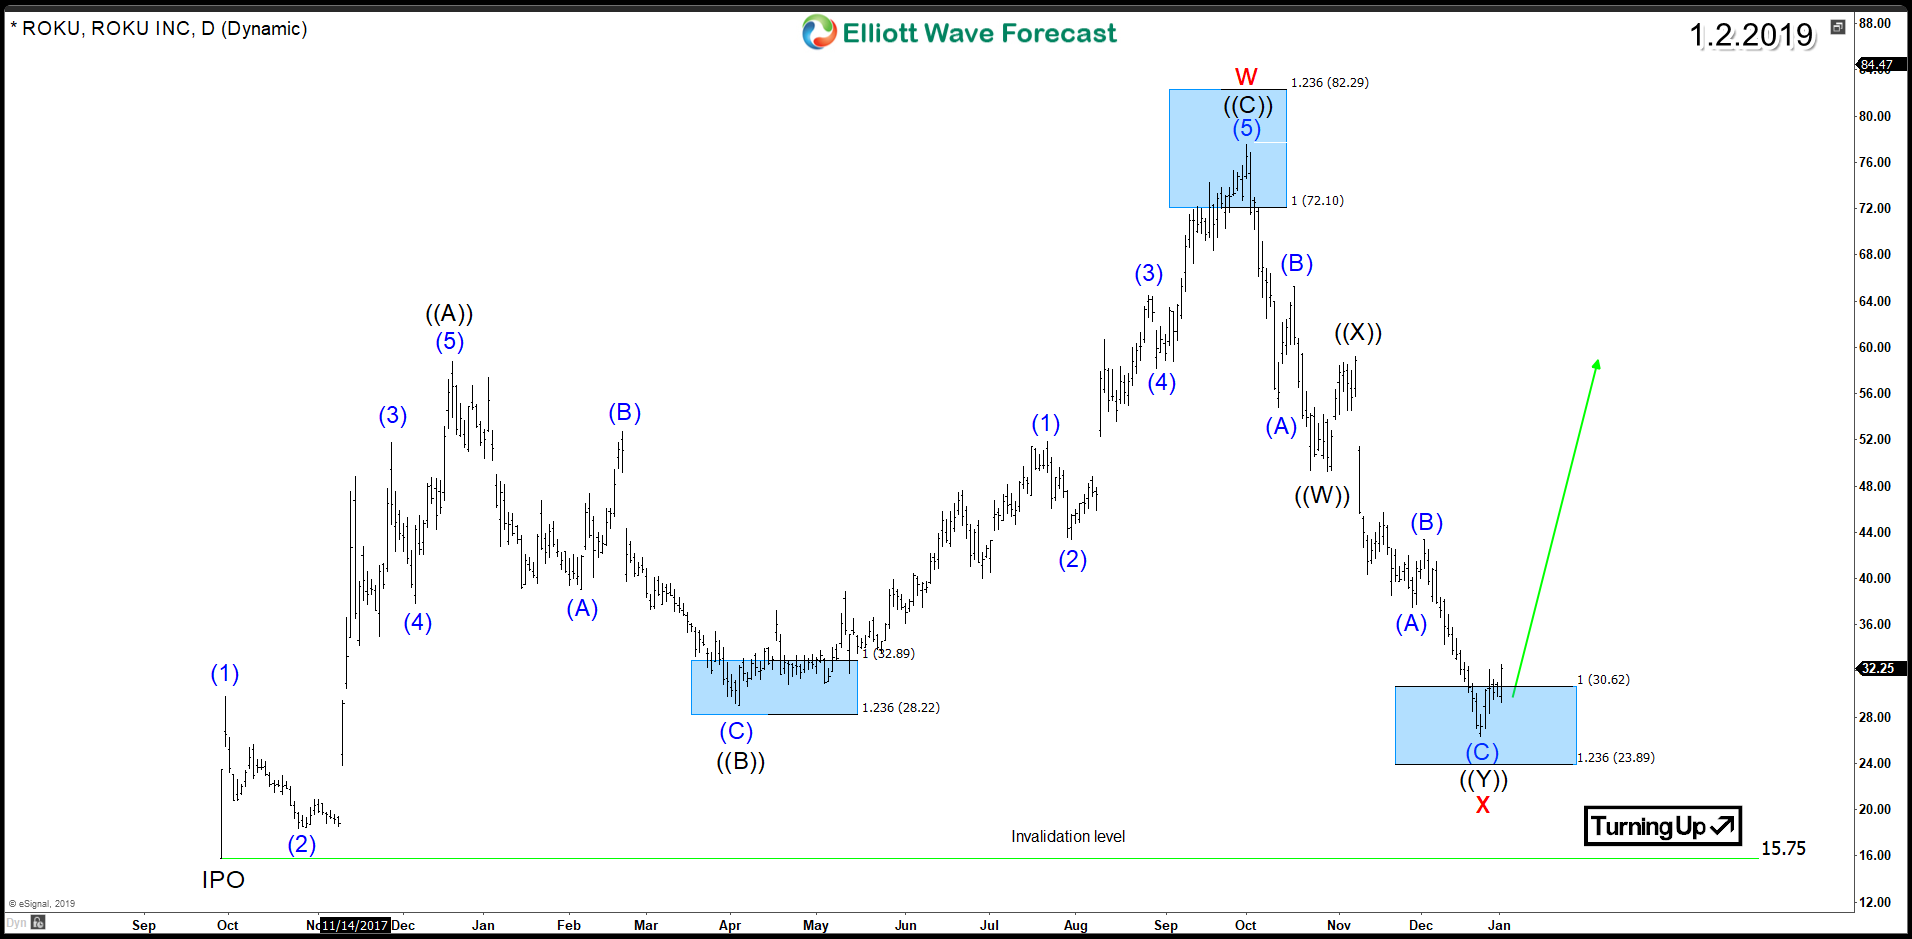 ROKU ElliottWave Corrective Structure Suggesting a Recovery